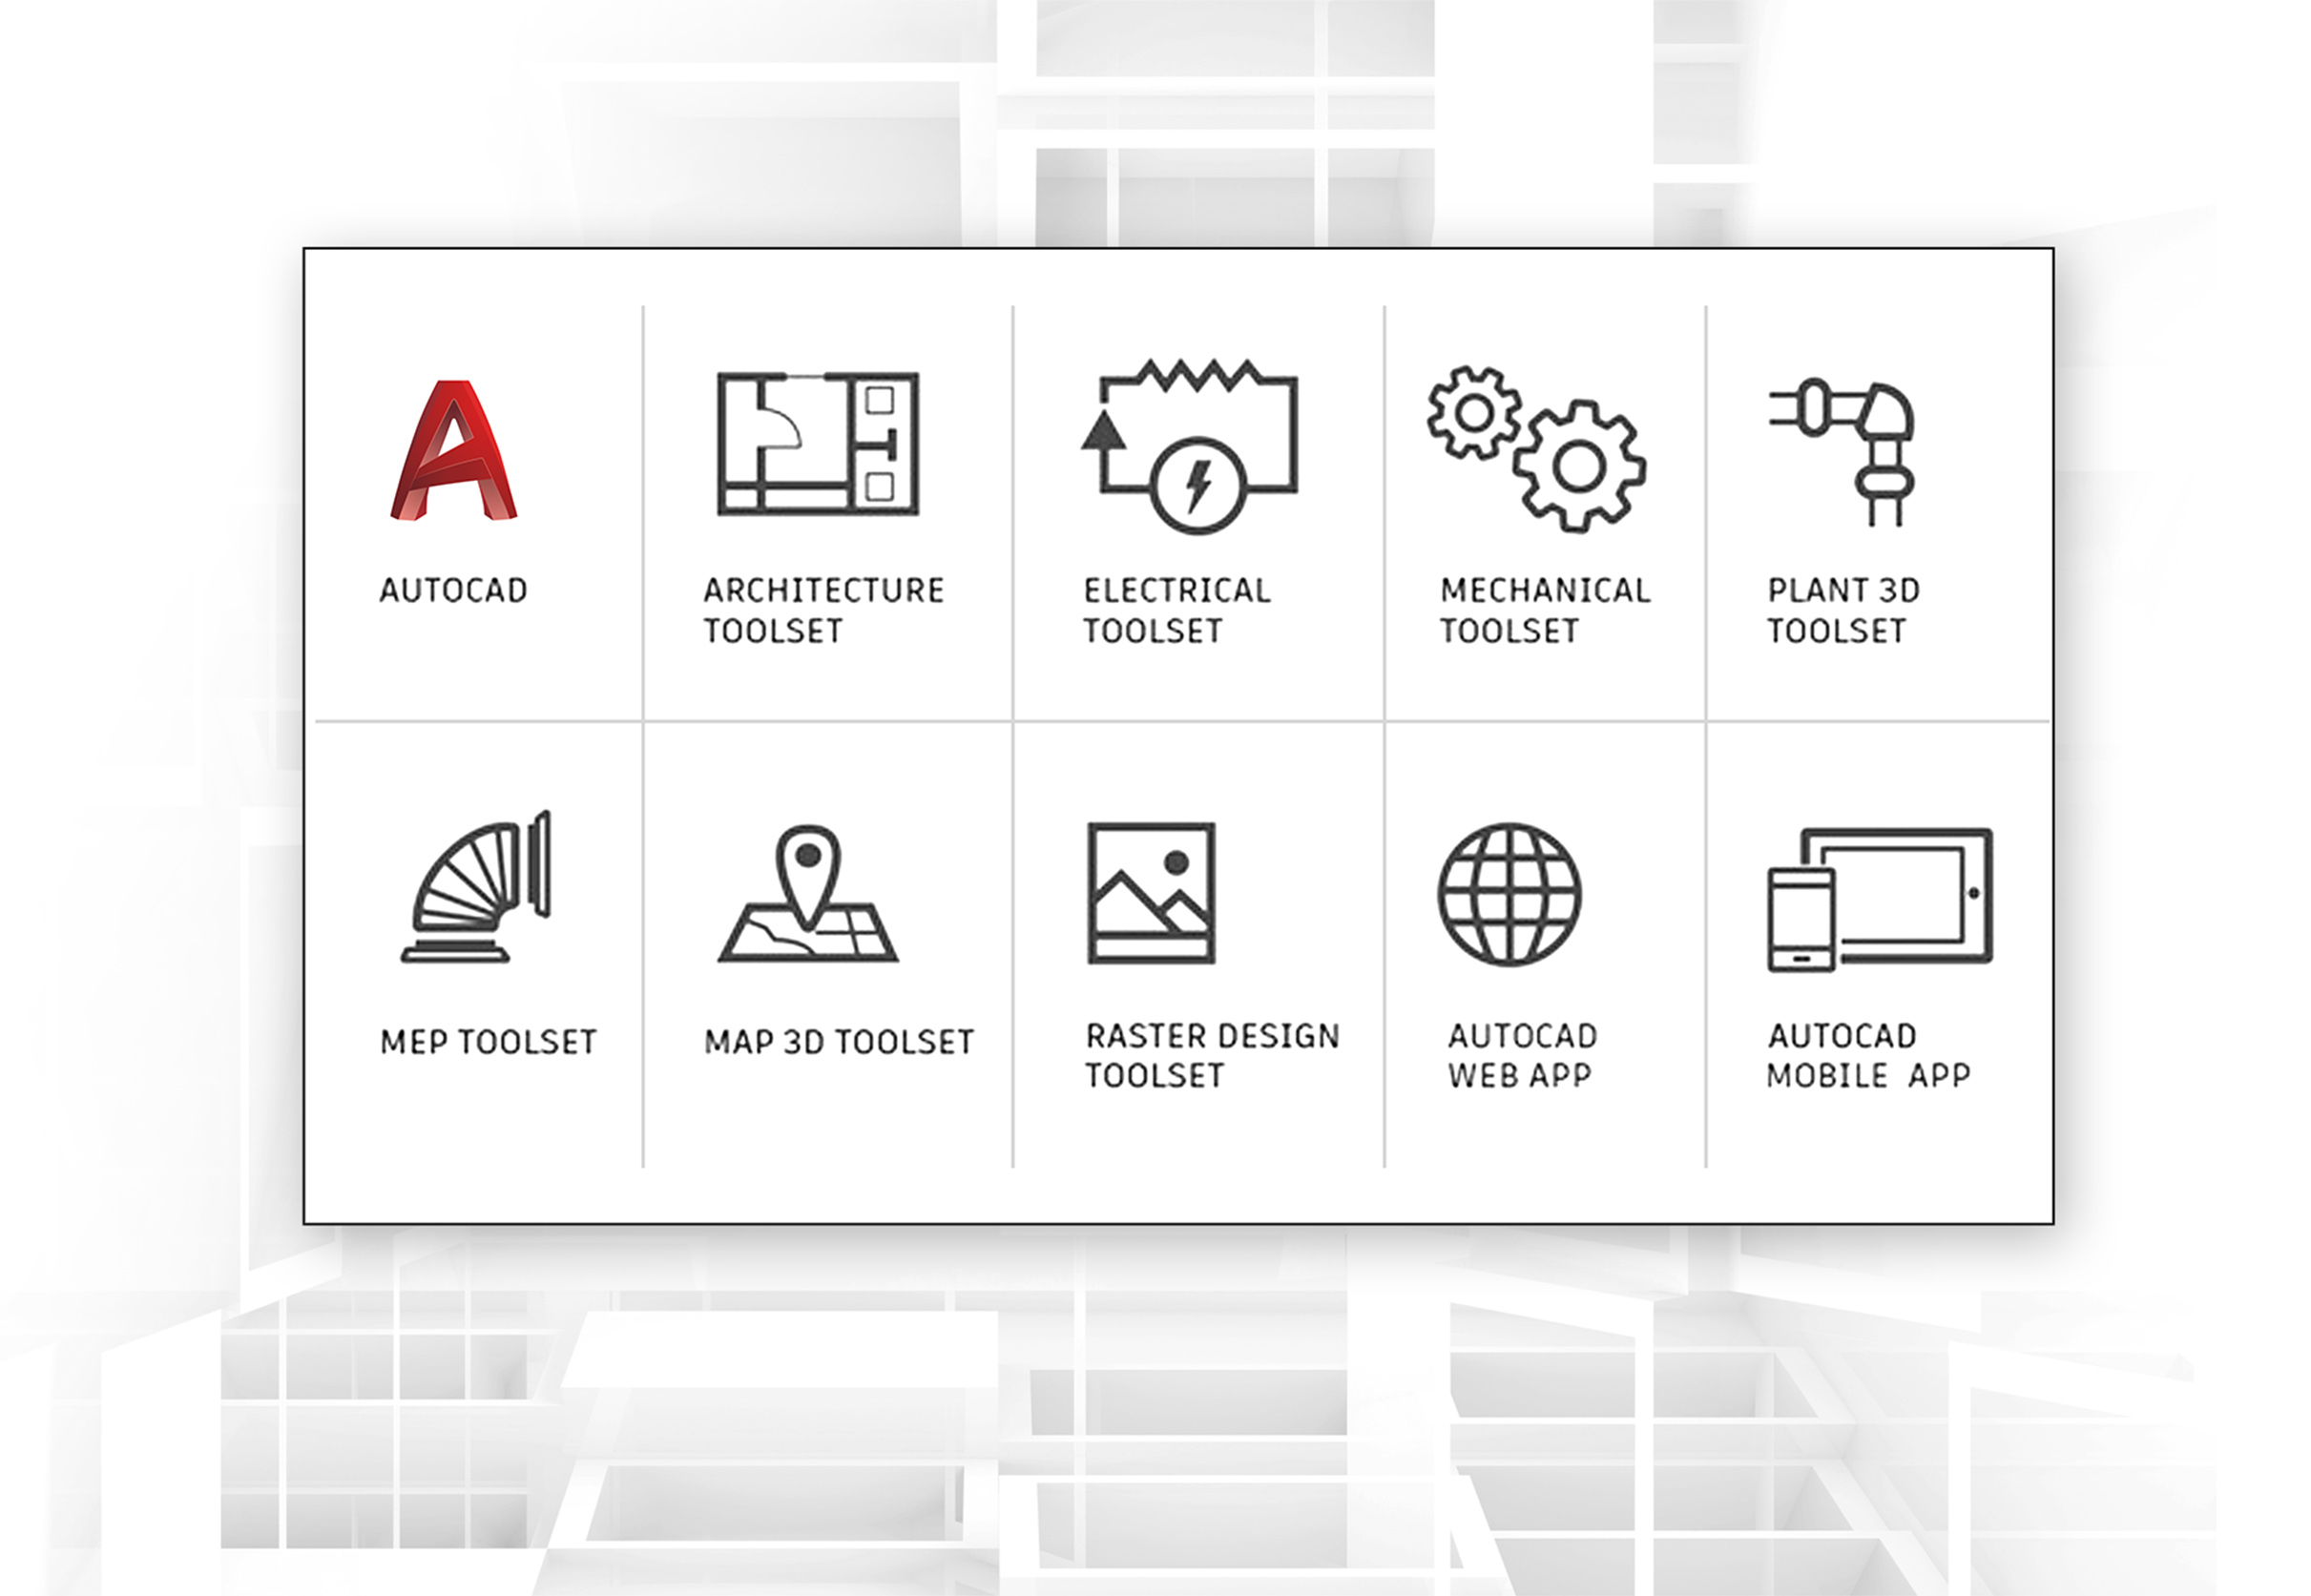 AutoCAD Included Specialized Toolsets